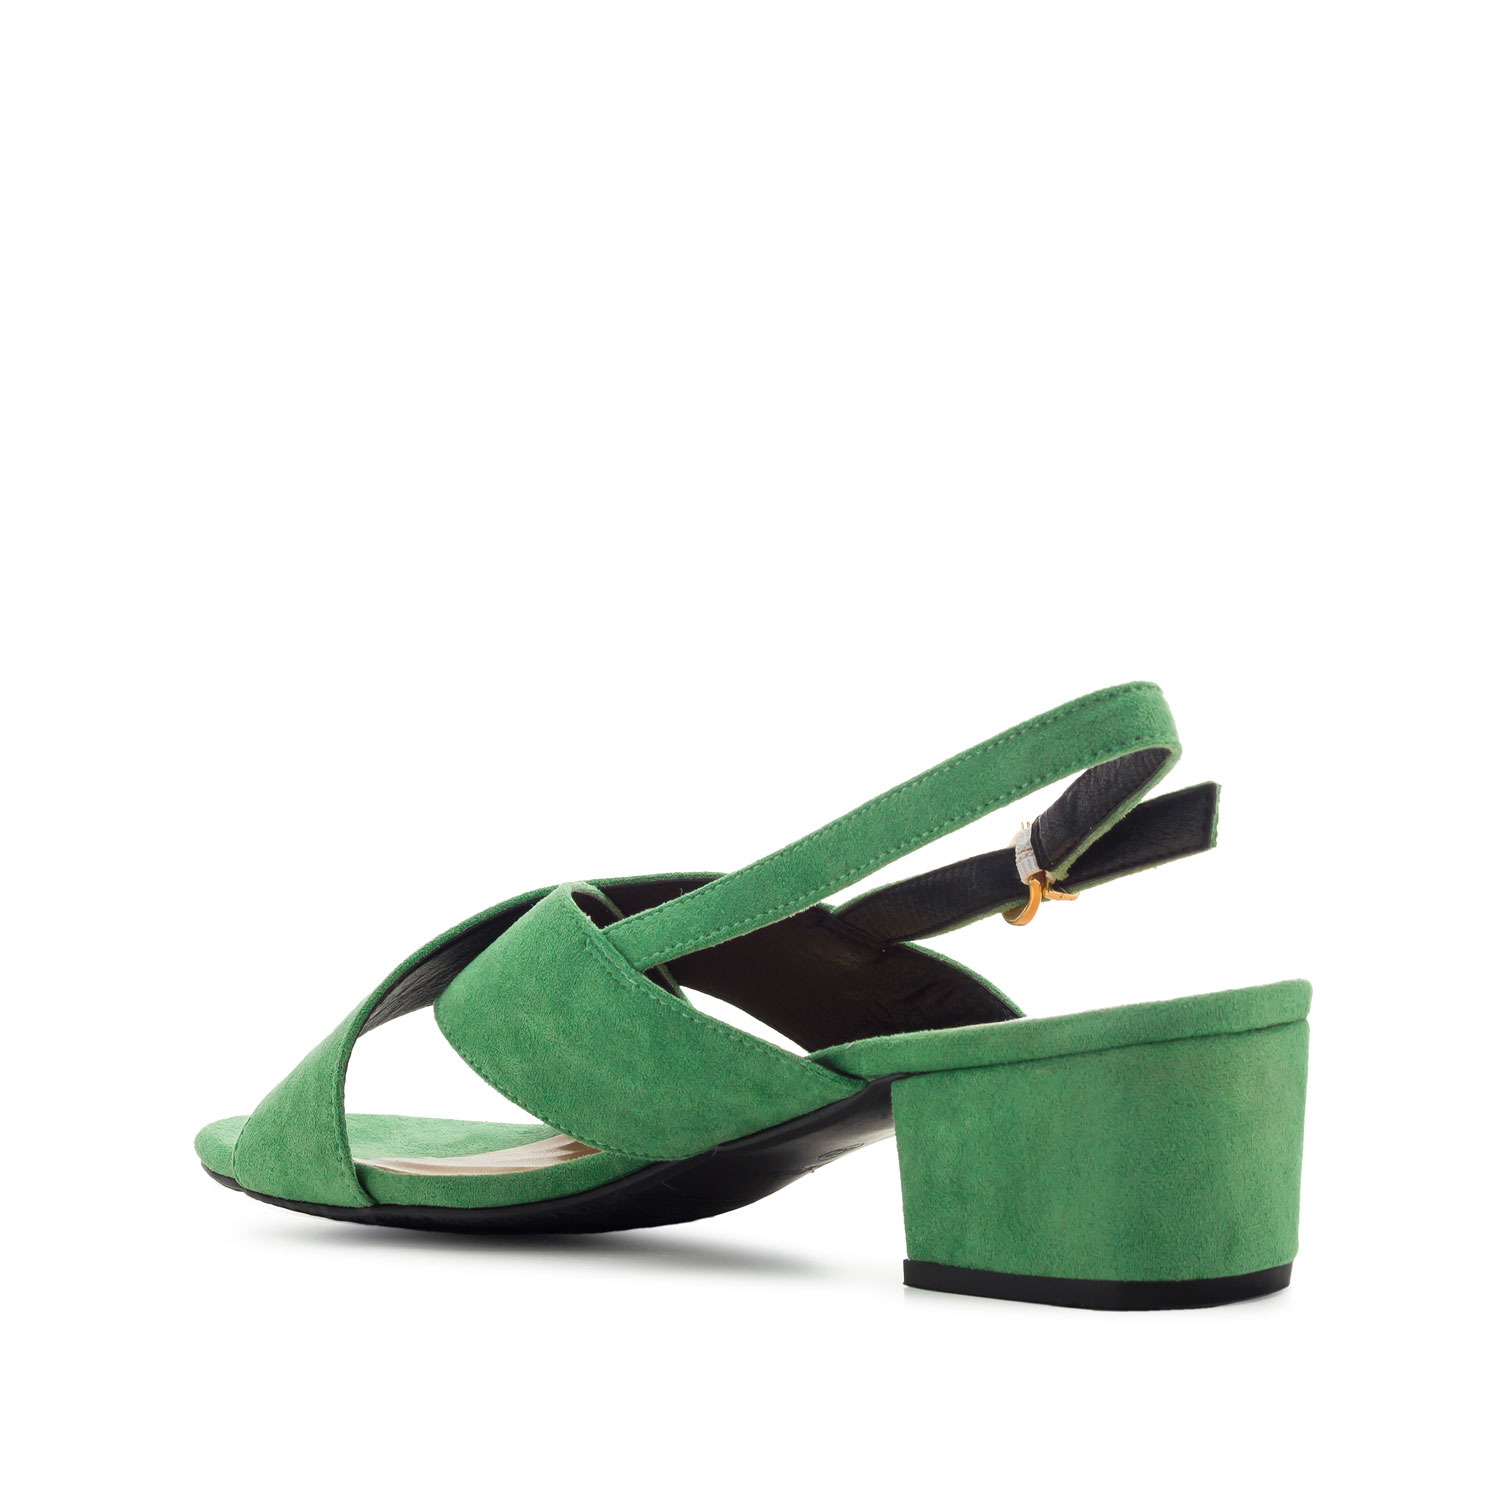 Slingback Cross-band Sandals in Green Suede